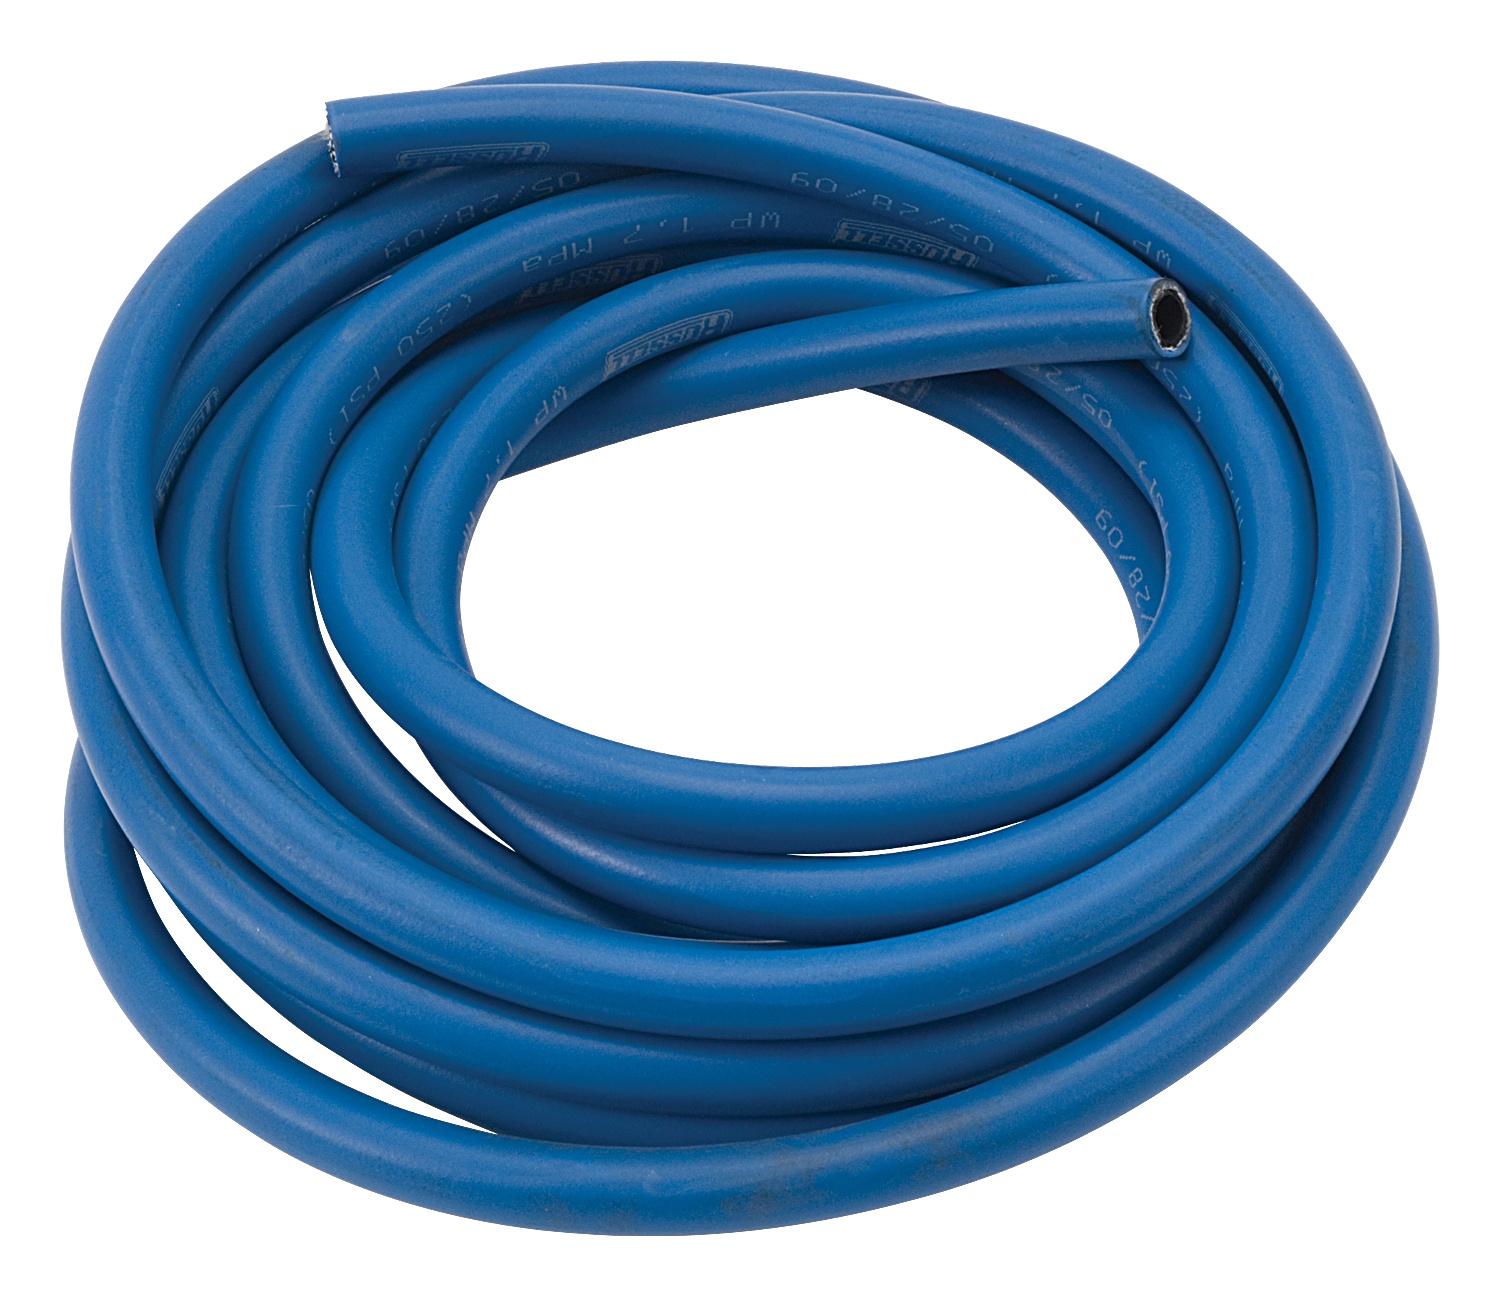 Russell 634370 Twist-Lok Hose  Blue  -06AN  6 ft. Roll  Actual ID 3/8 in.  OD 5/8 in.  Max psi 250 at Sears.com